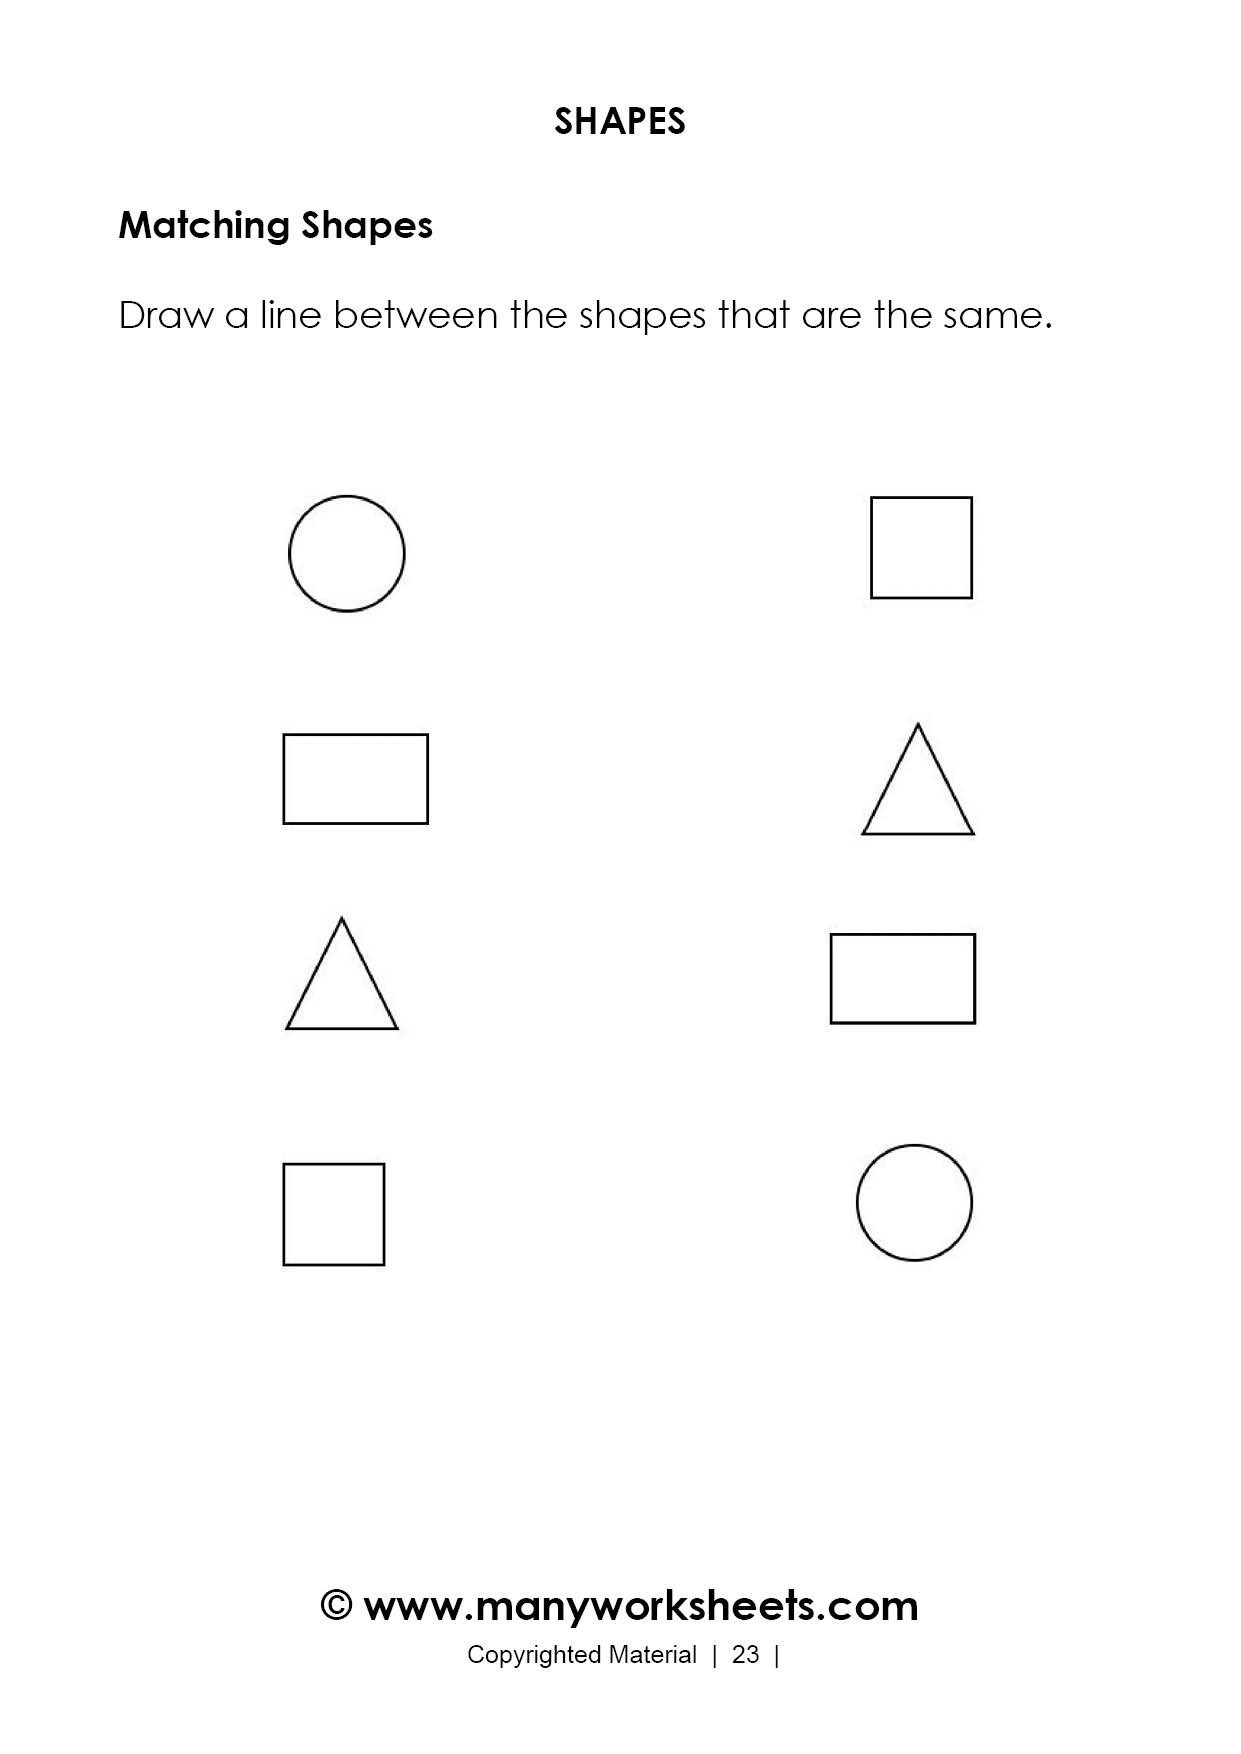 Shapes Worksheet for Kindergarten Math Worksheet Matchingeets for Kindergarten Shapes